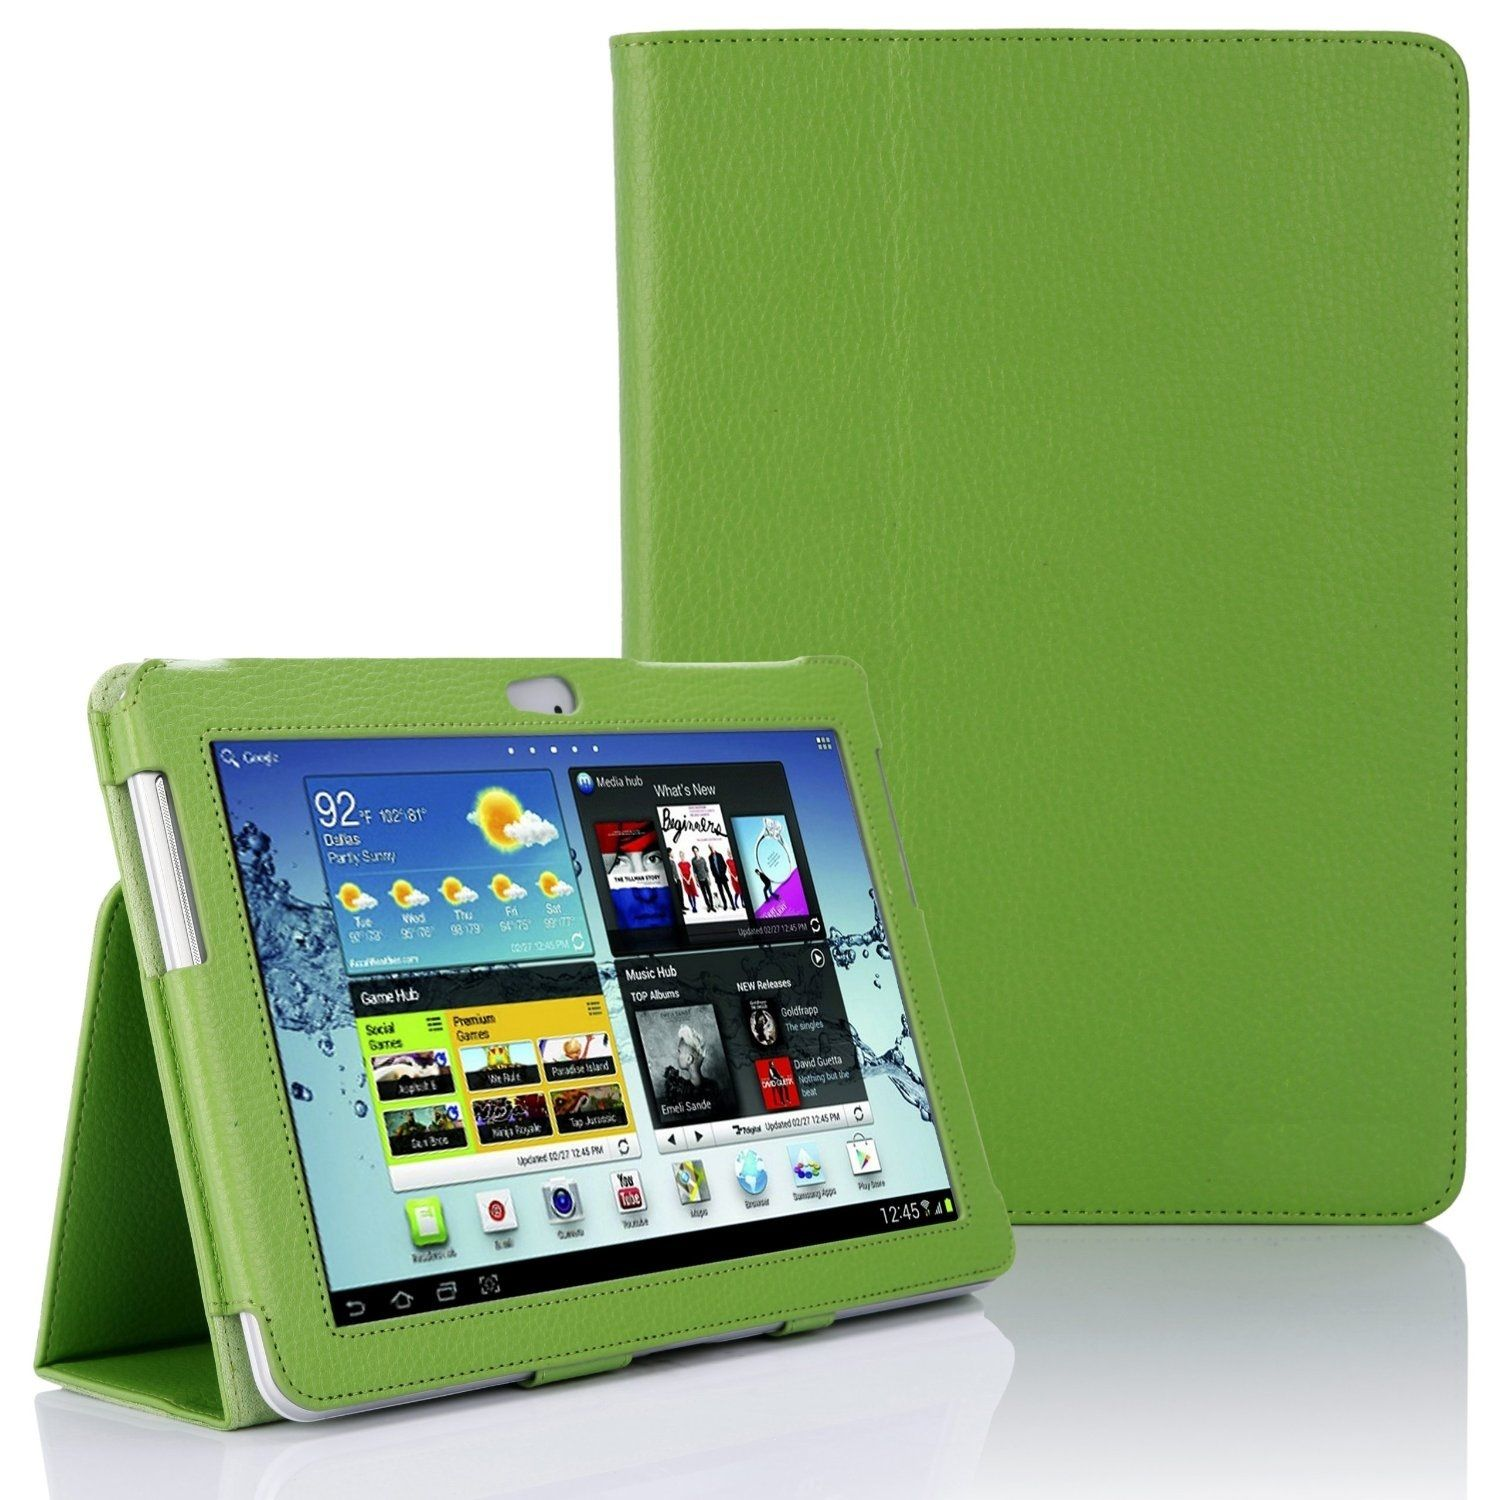 Samsung Galaxy TAB 2 10.1 P5100 - Leather Case Pack - Green